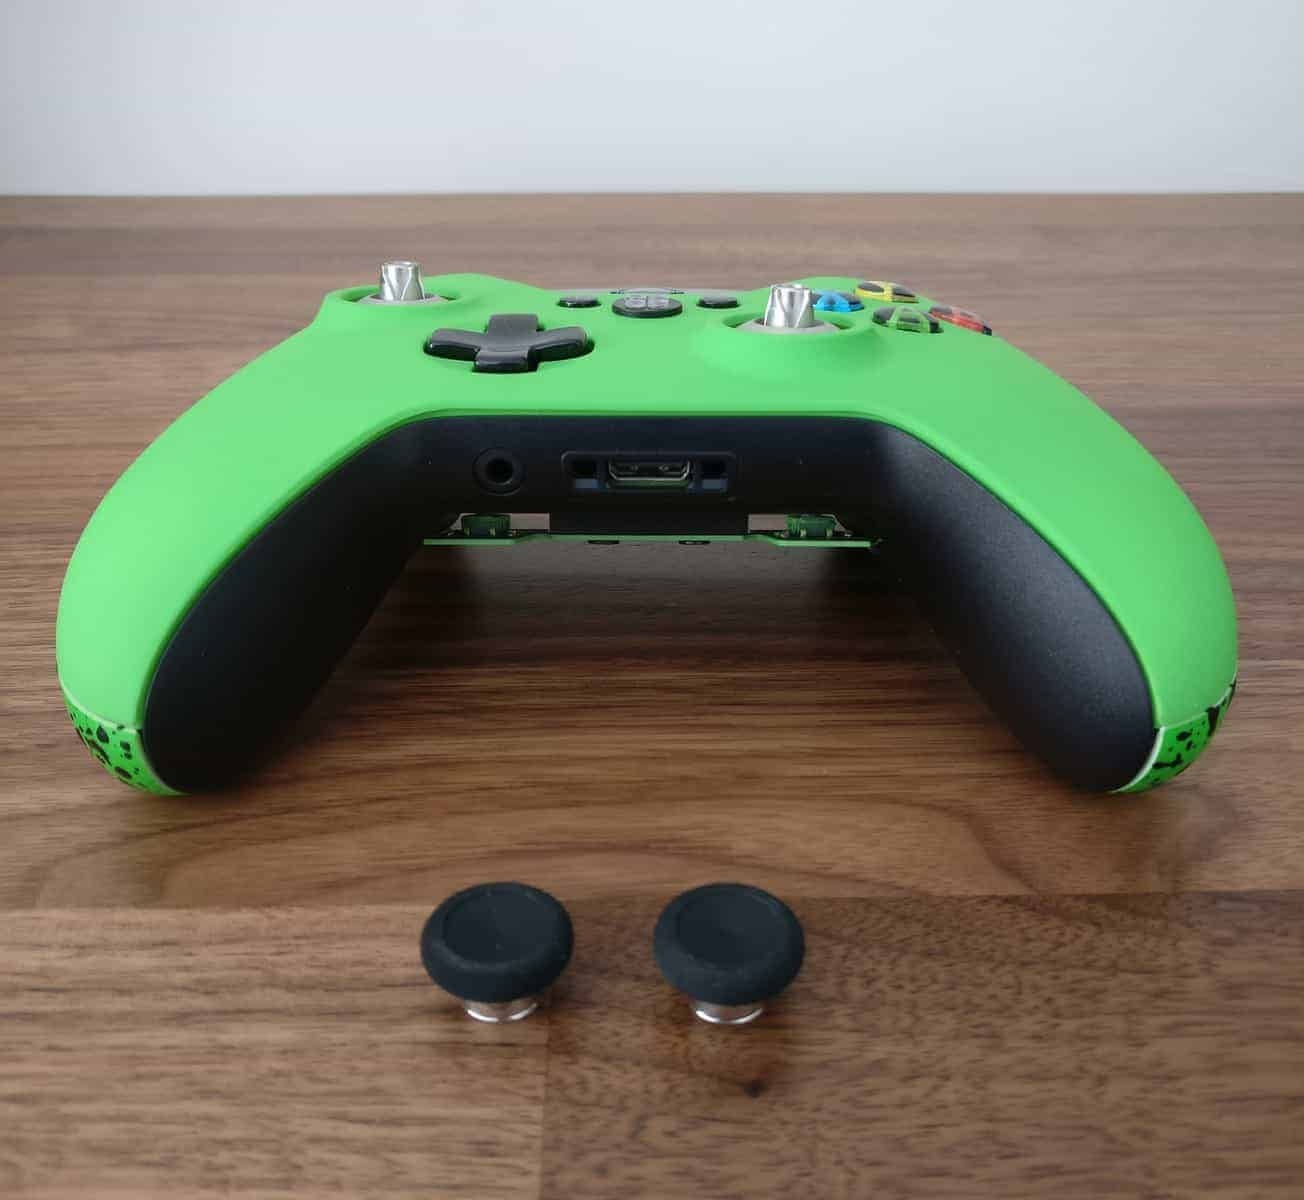 mega-modz-planey-xbox-Photos-14 Mega Modz Planet Modded PS4 and Xbox One Controller Review